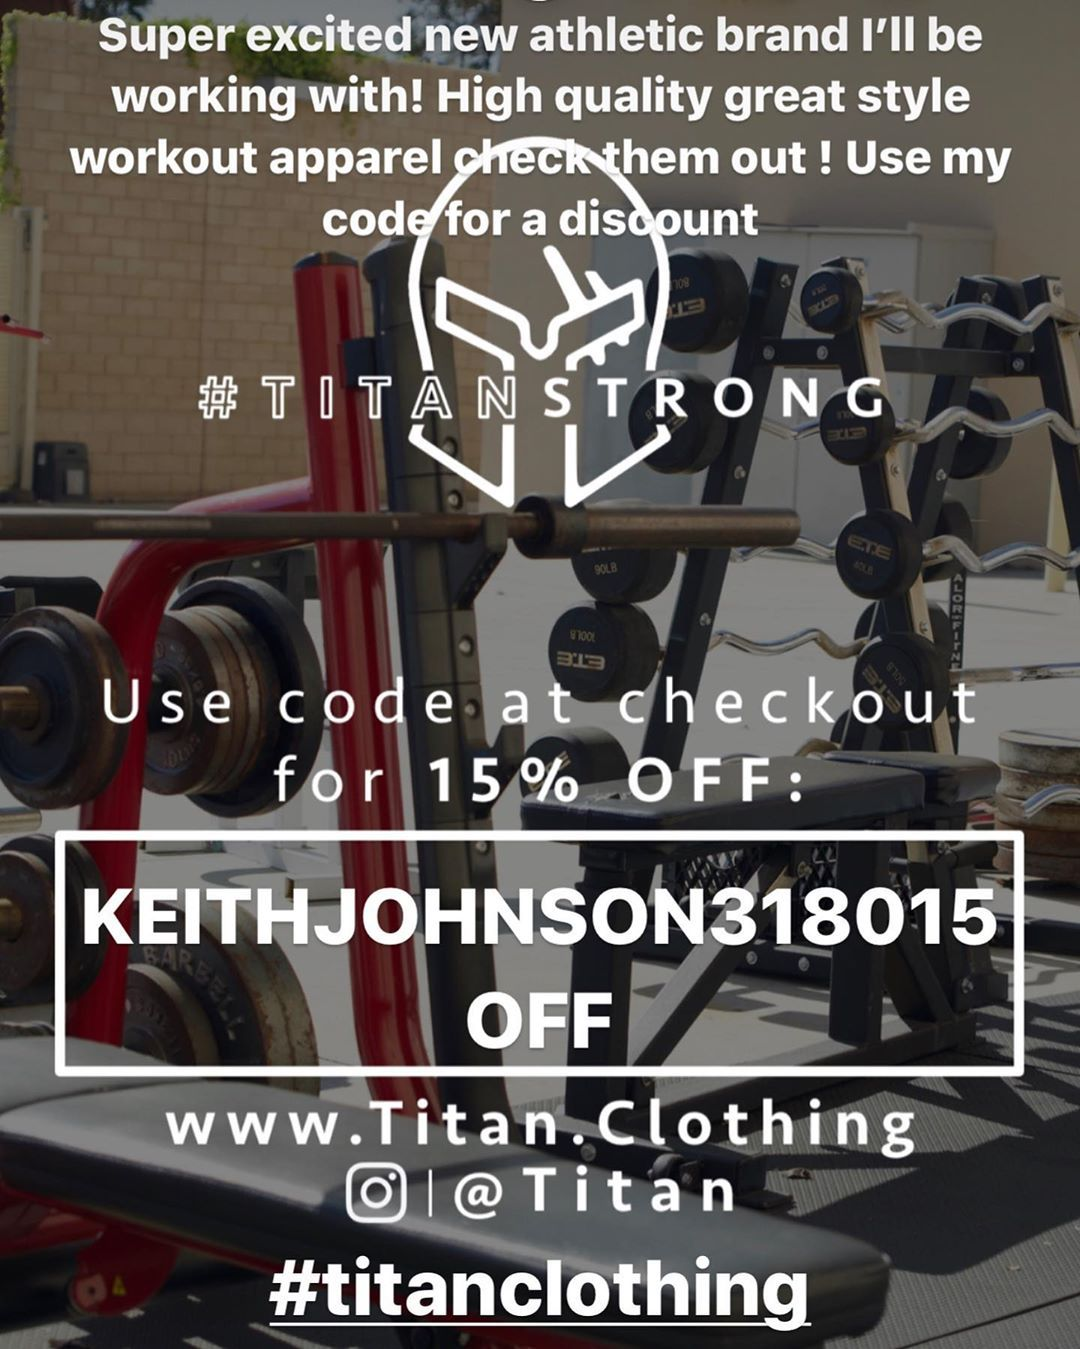 Excited to work  with @titan  Check them out for sleek great quality #workout  #apparel...